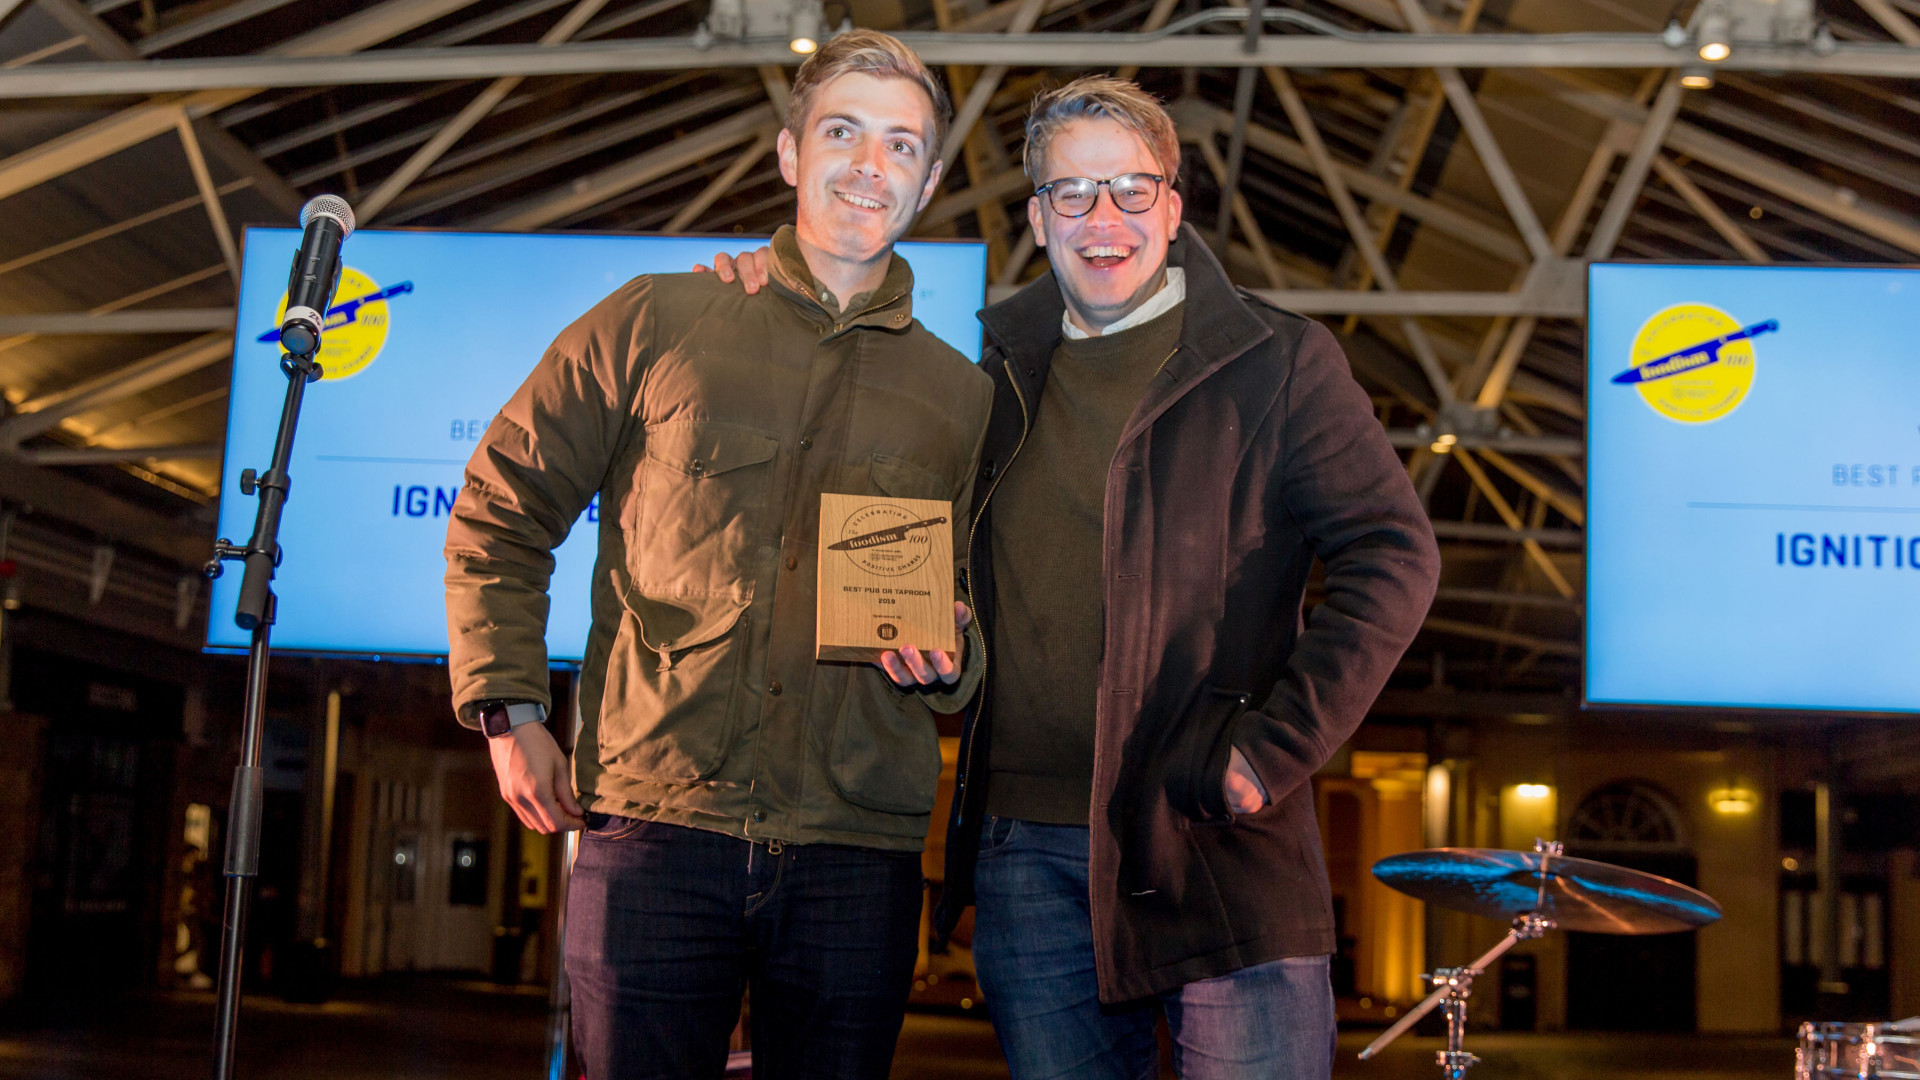 The Foodism 100 awards night 2019: Ignition Brewery wins Best Pub or Taproom